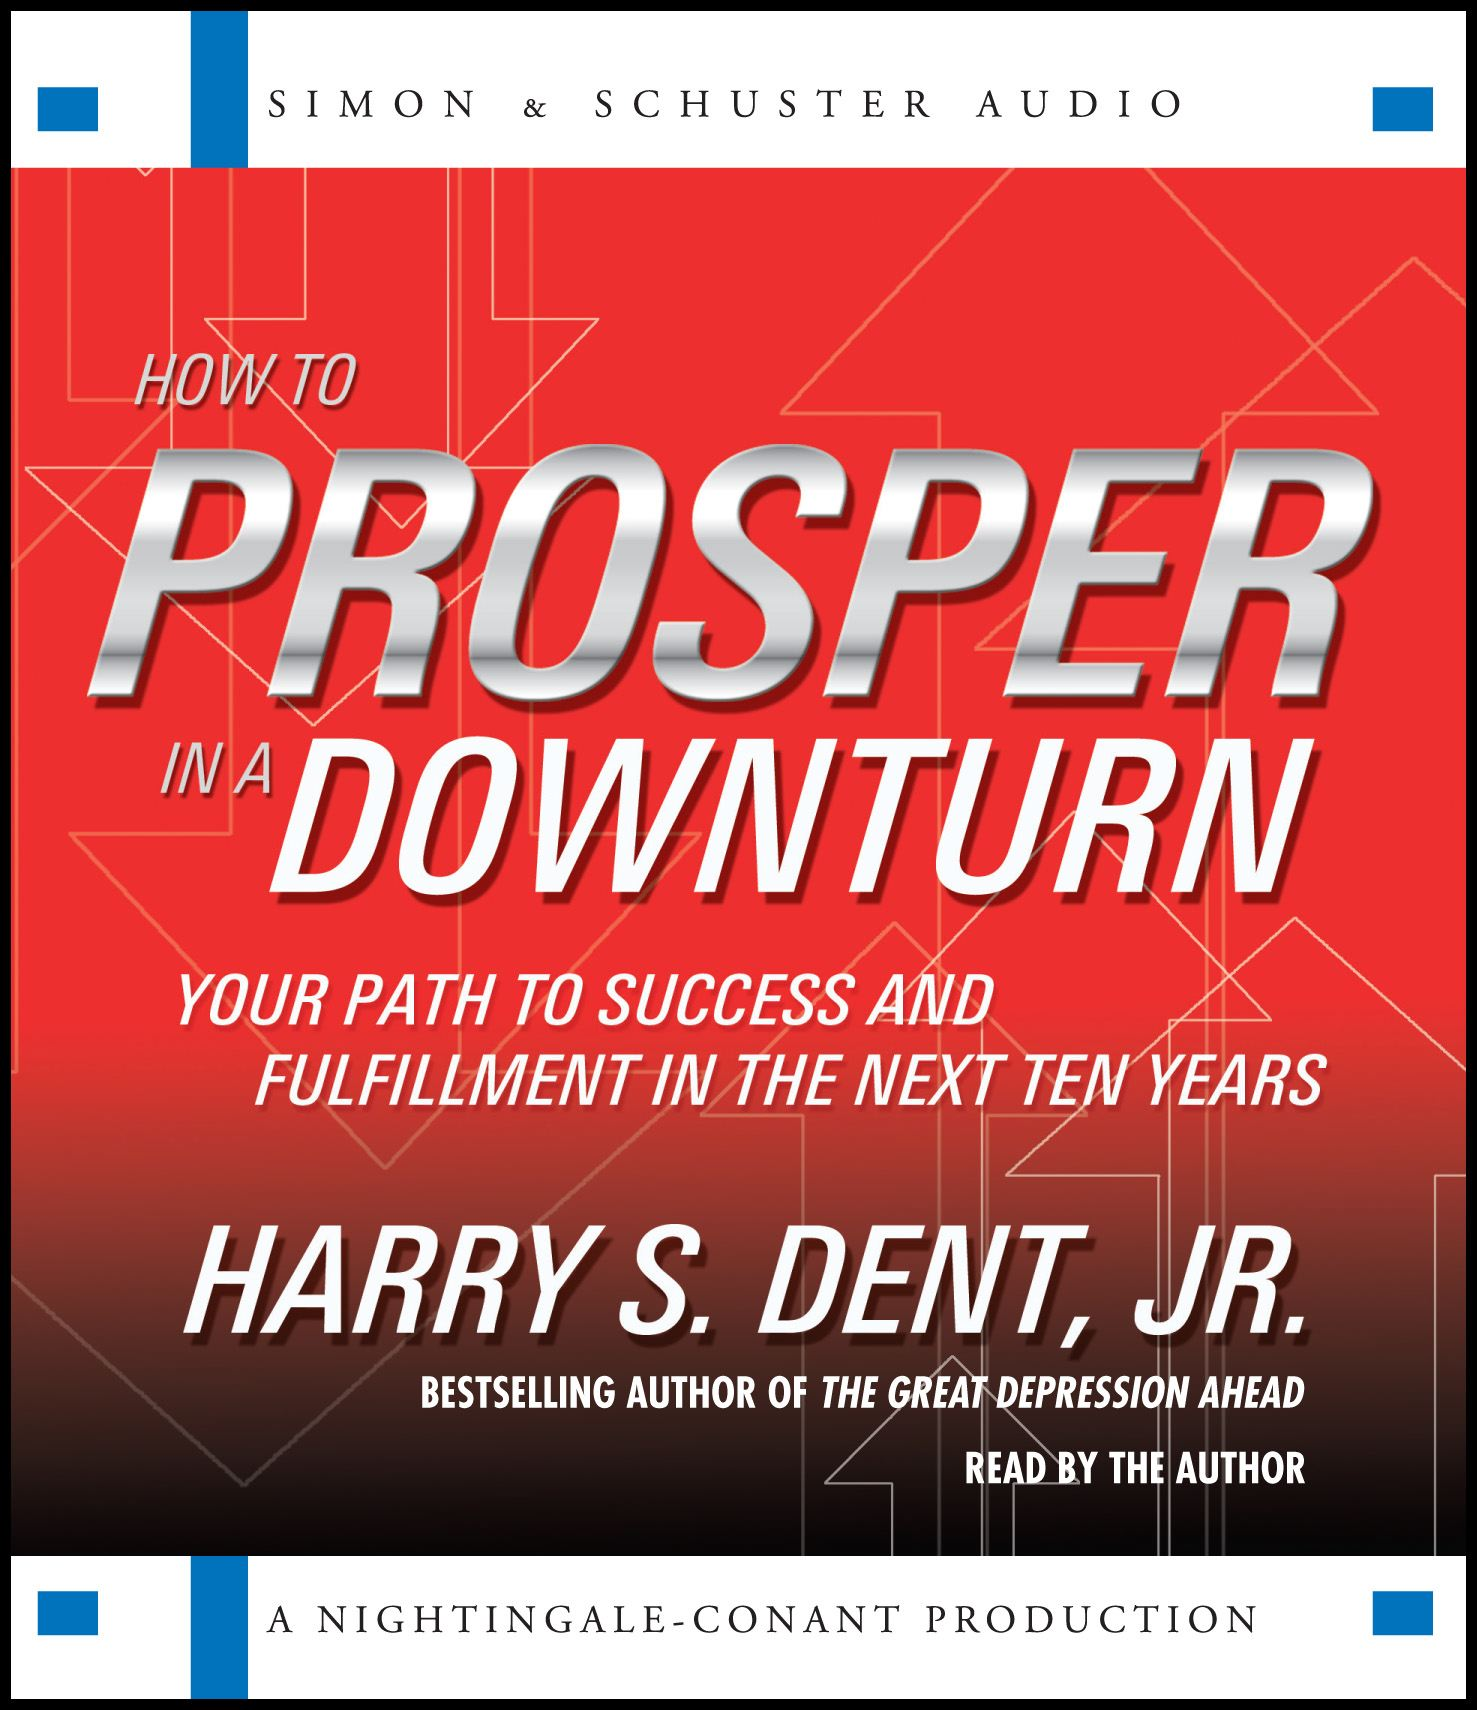 How to prosper in a downturn 9781442300644 hr